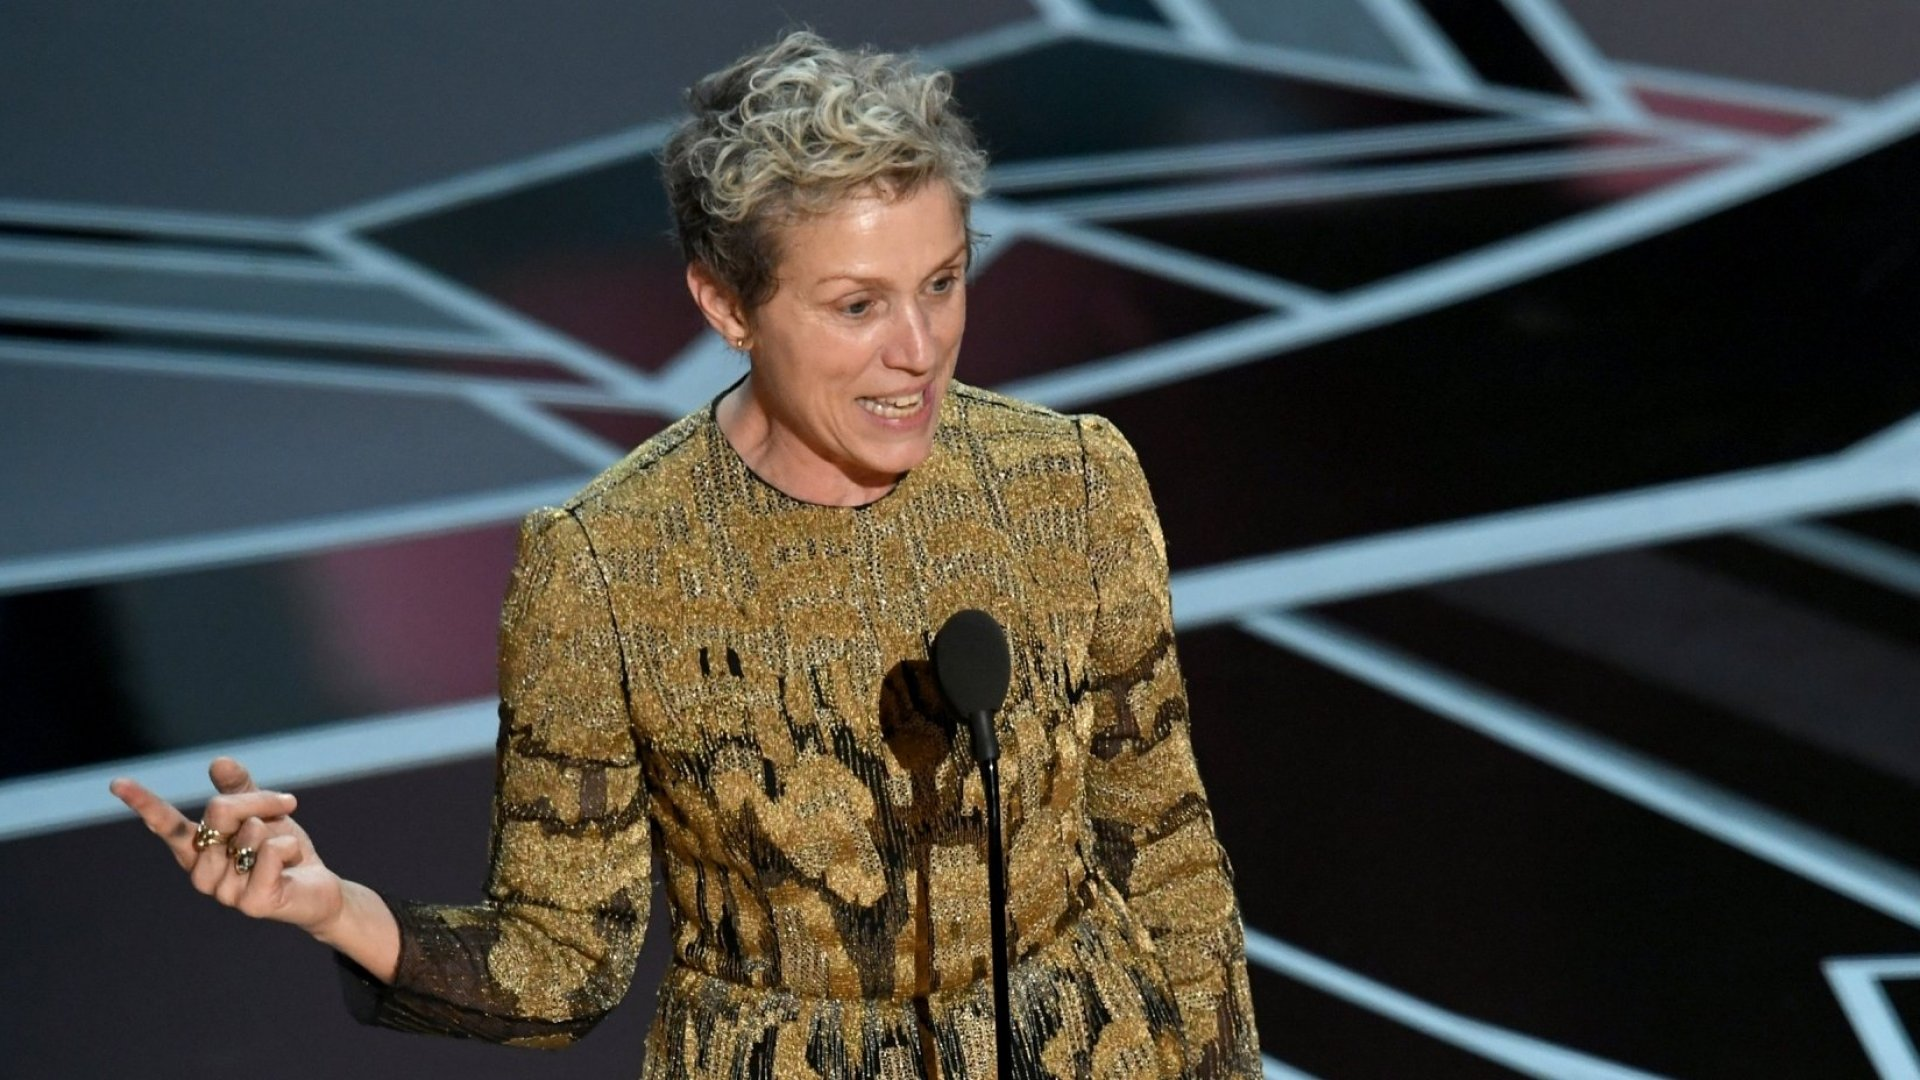 Frances McDormand accepts the Best Actress award for 'Three Billboards Outside Ebbing, Missouri' at the 90th Annual Academy Awards on March 4, 2018.